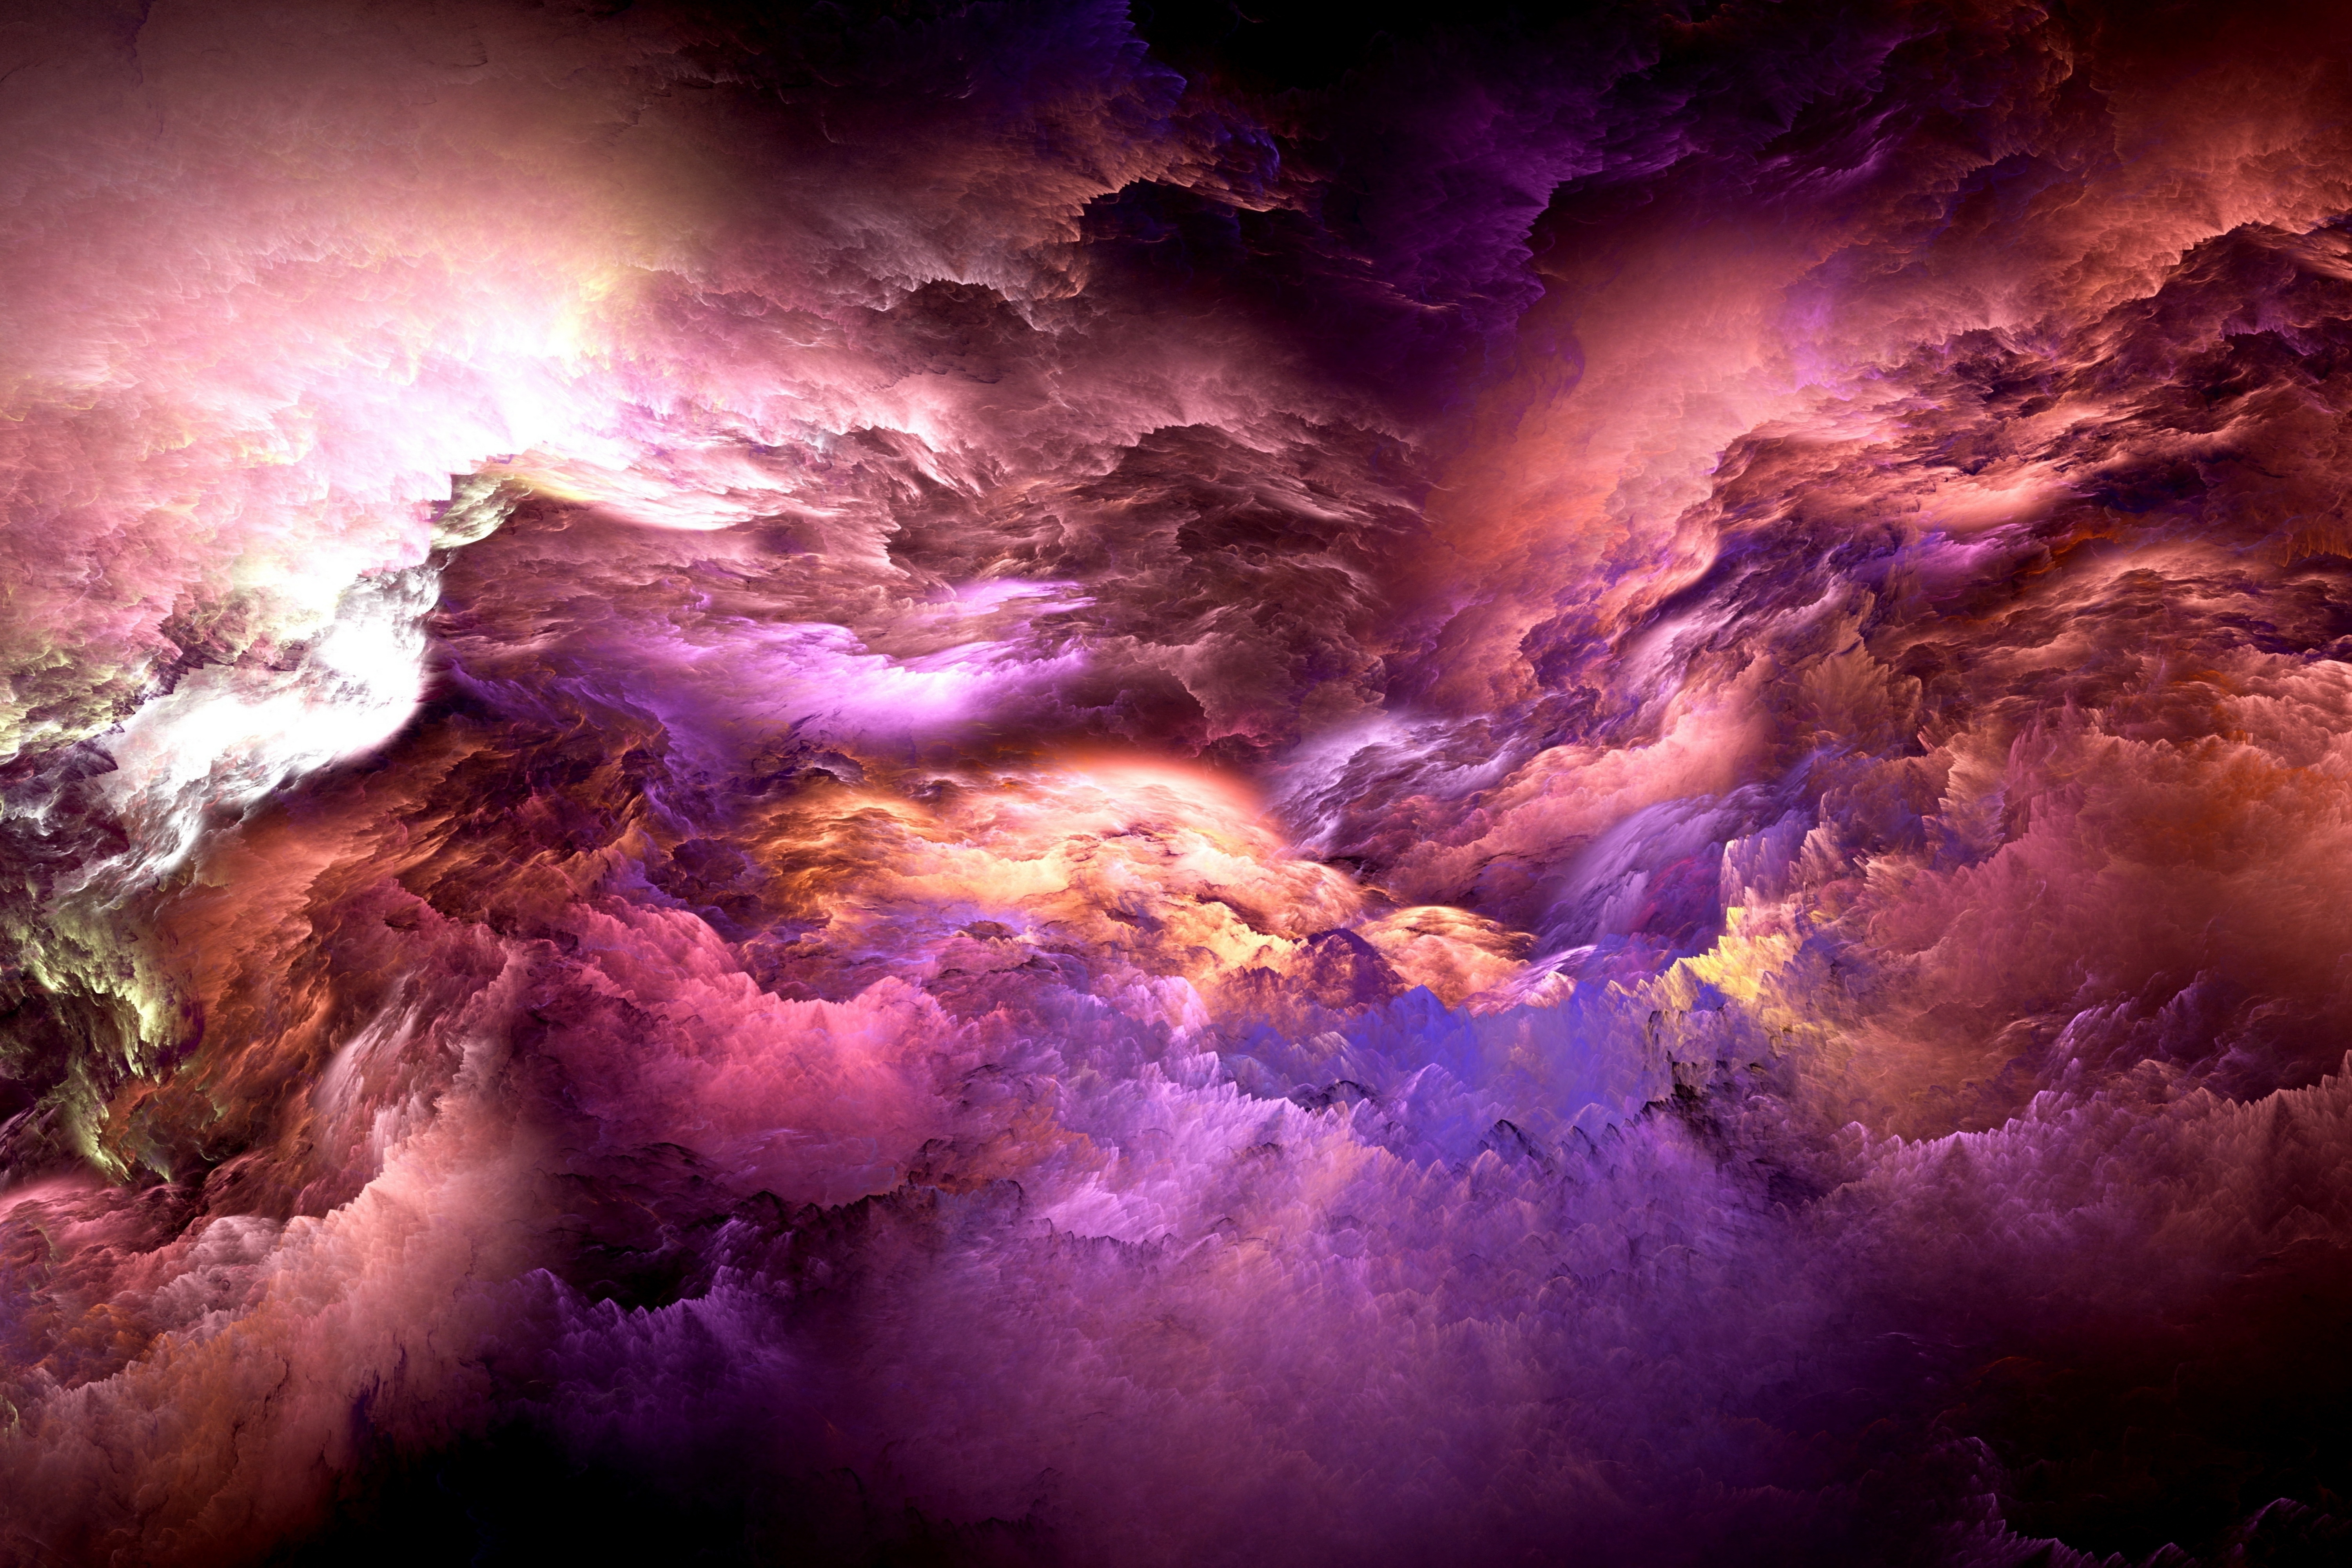 Abstract Cloud 5k Retina Ultra HD Wallpaper And Background Image